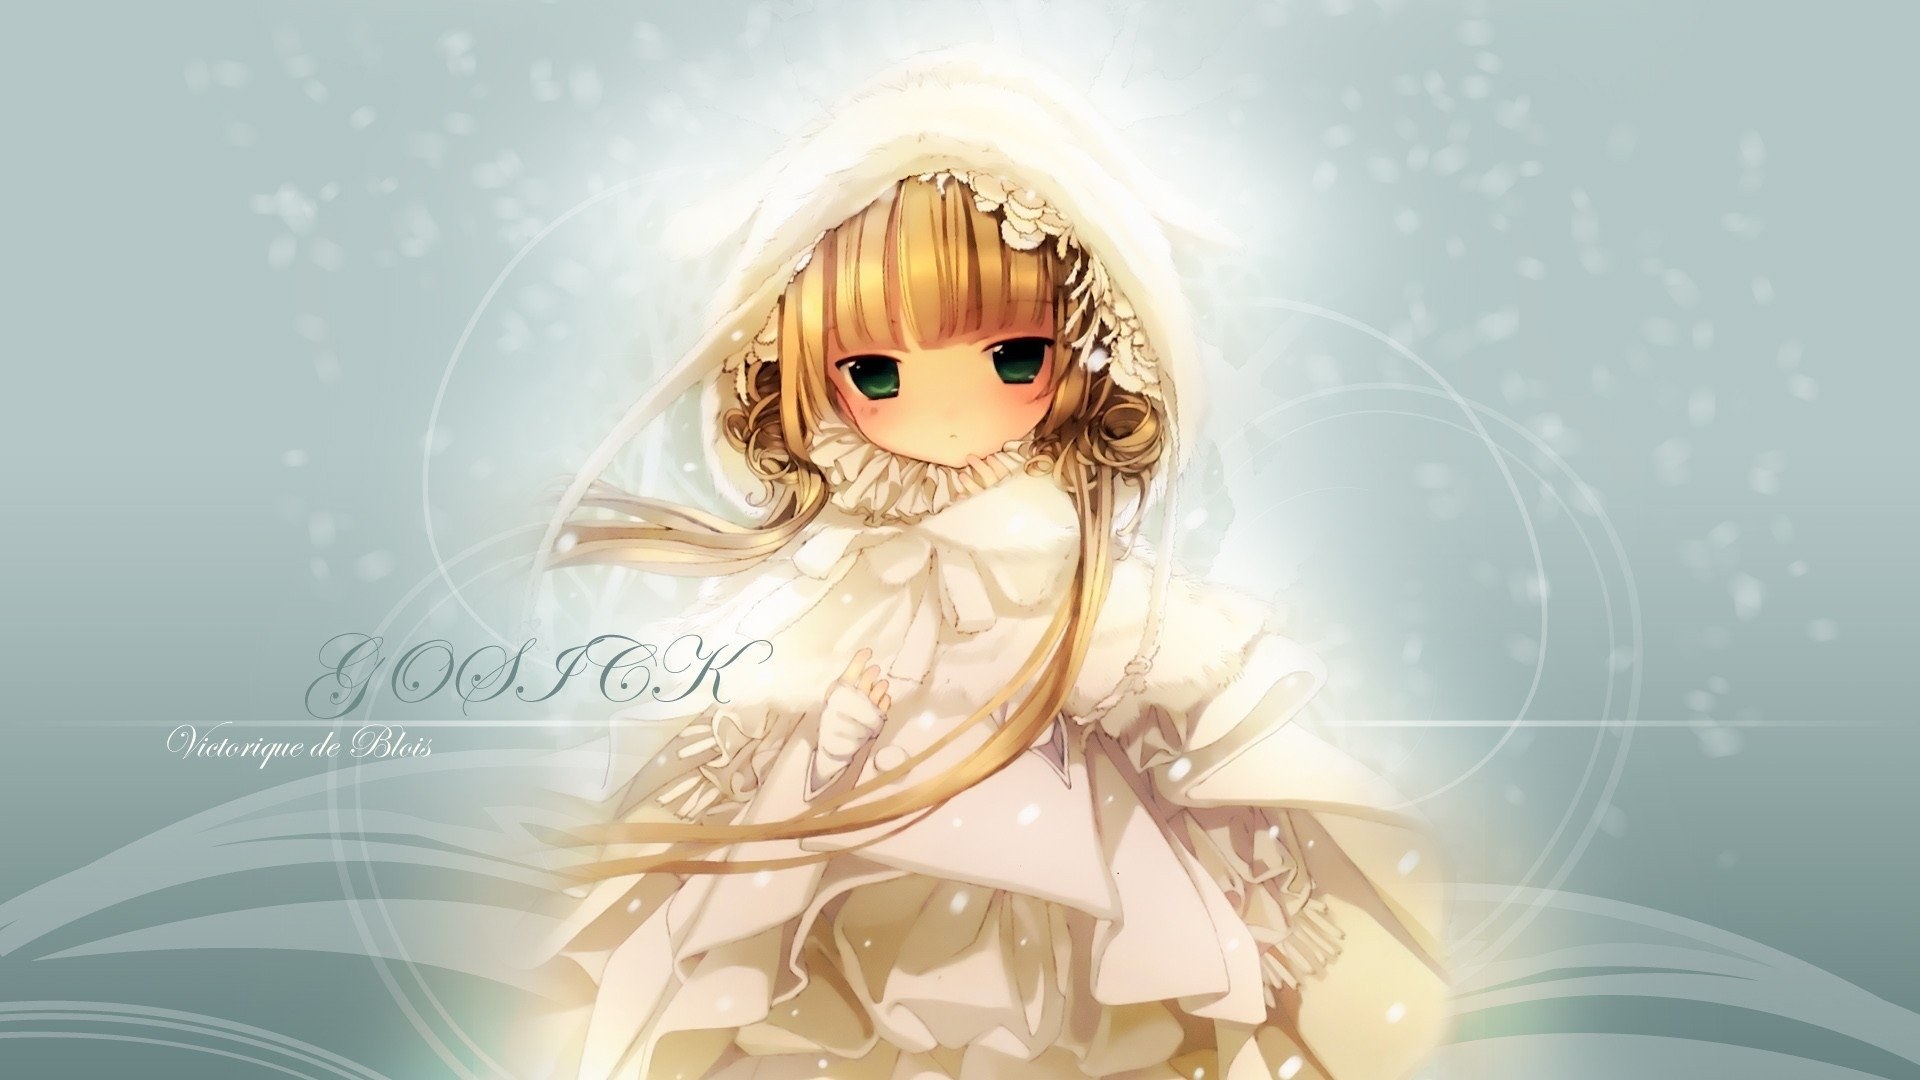 Download full hd Gosick desktop background ID:318413 for free